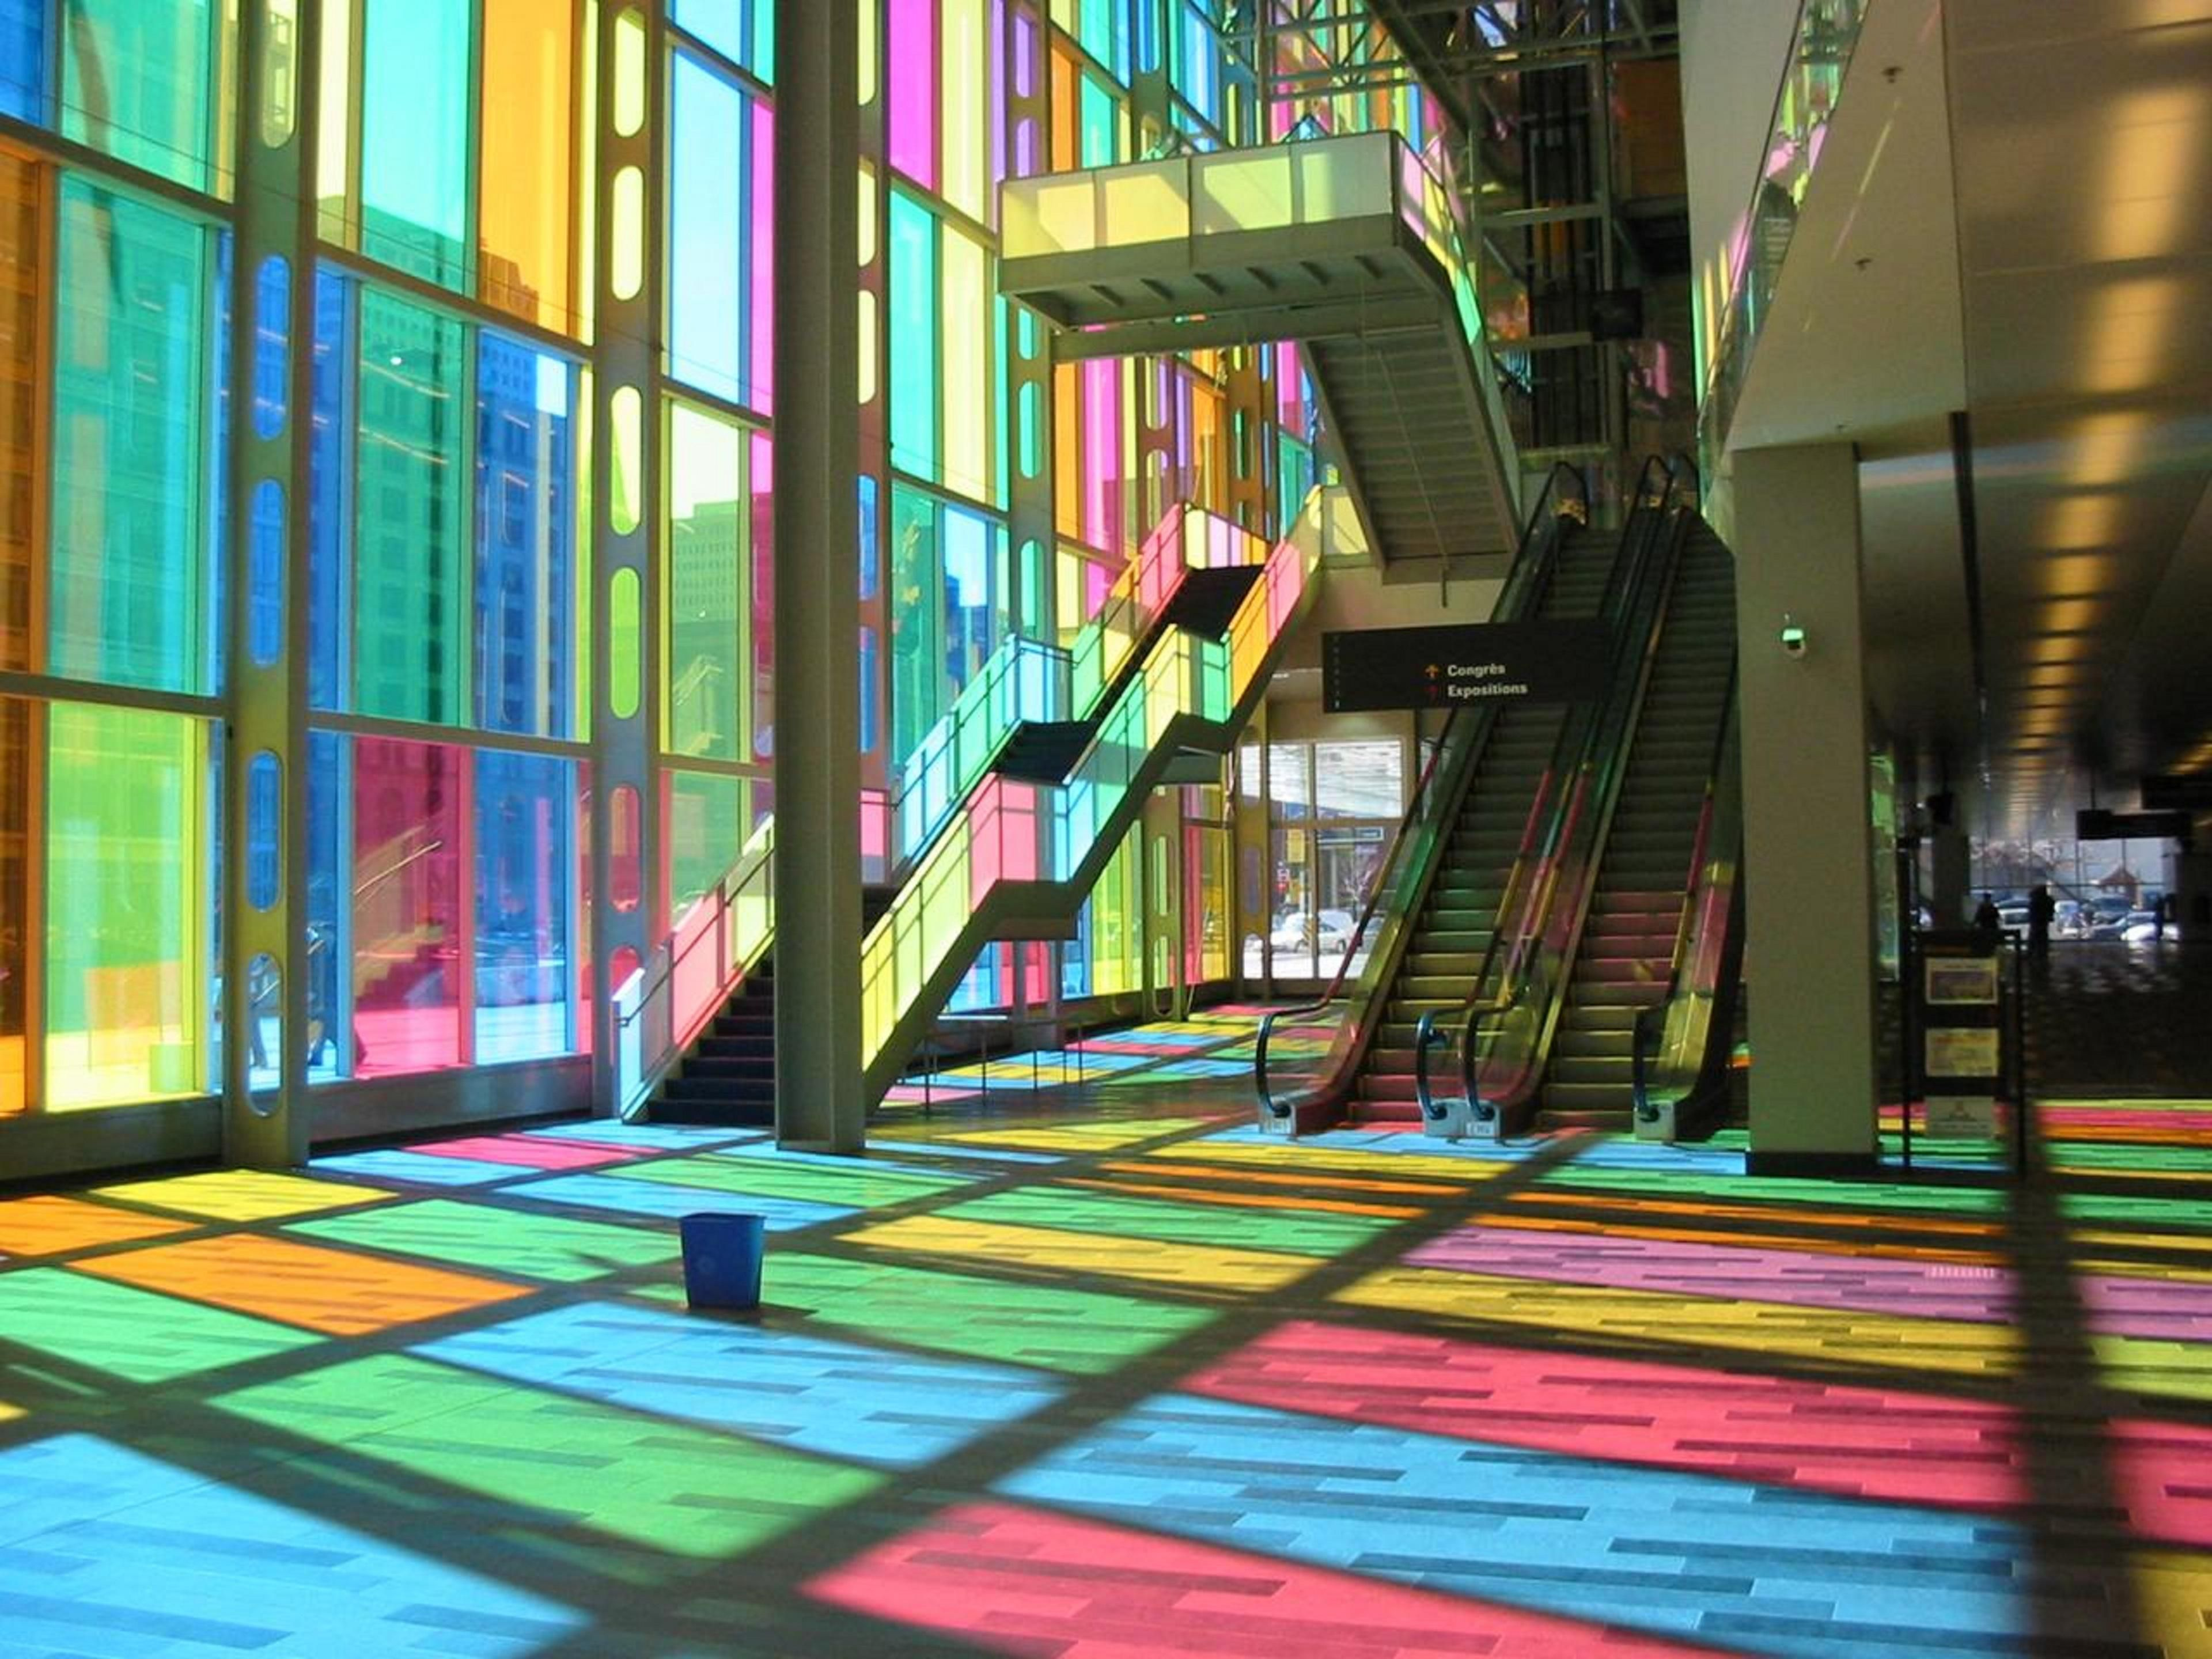 The Montreal convention centre - Le Palais des Congrès